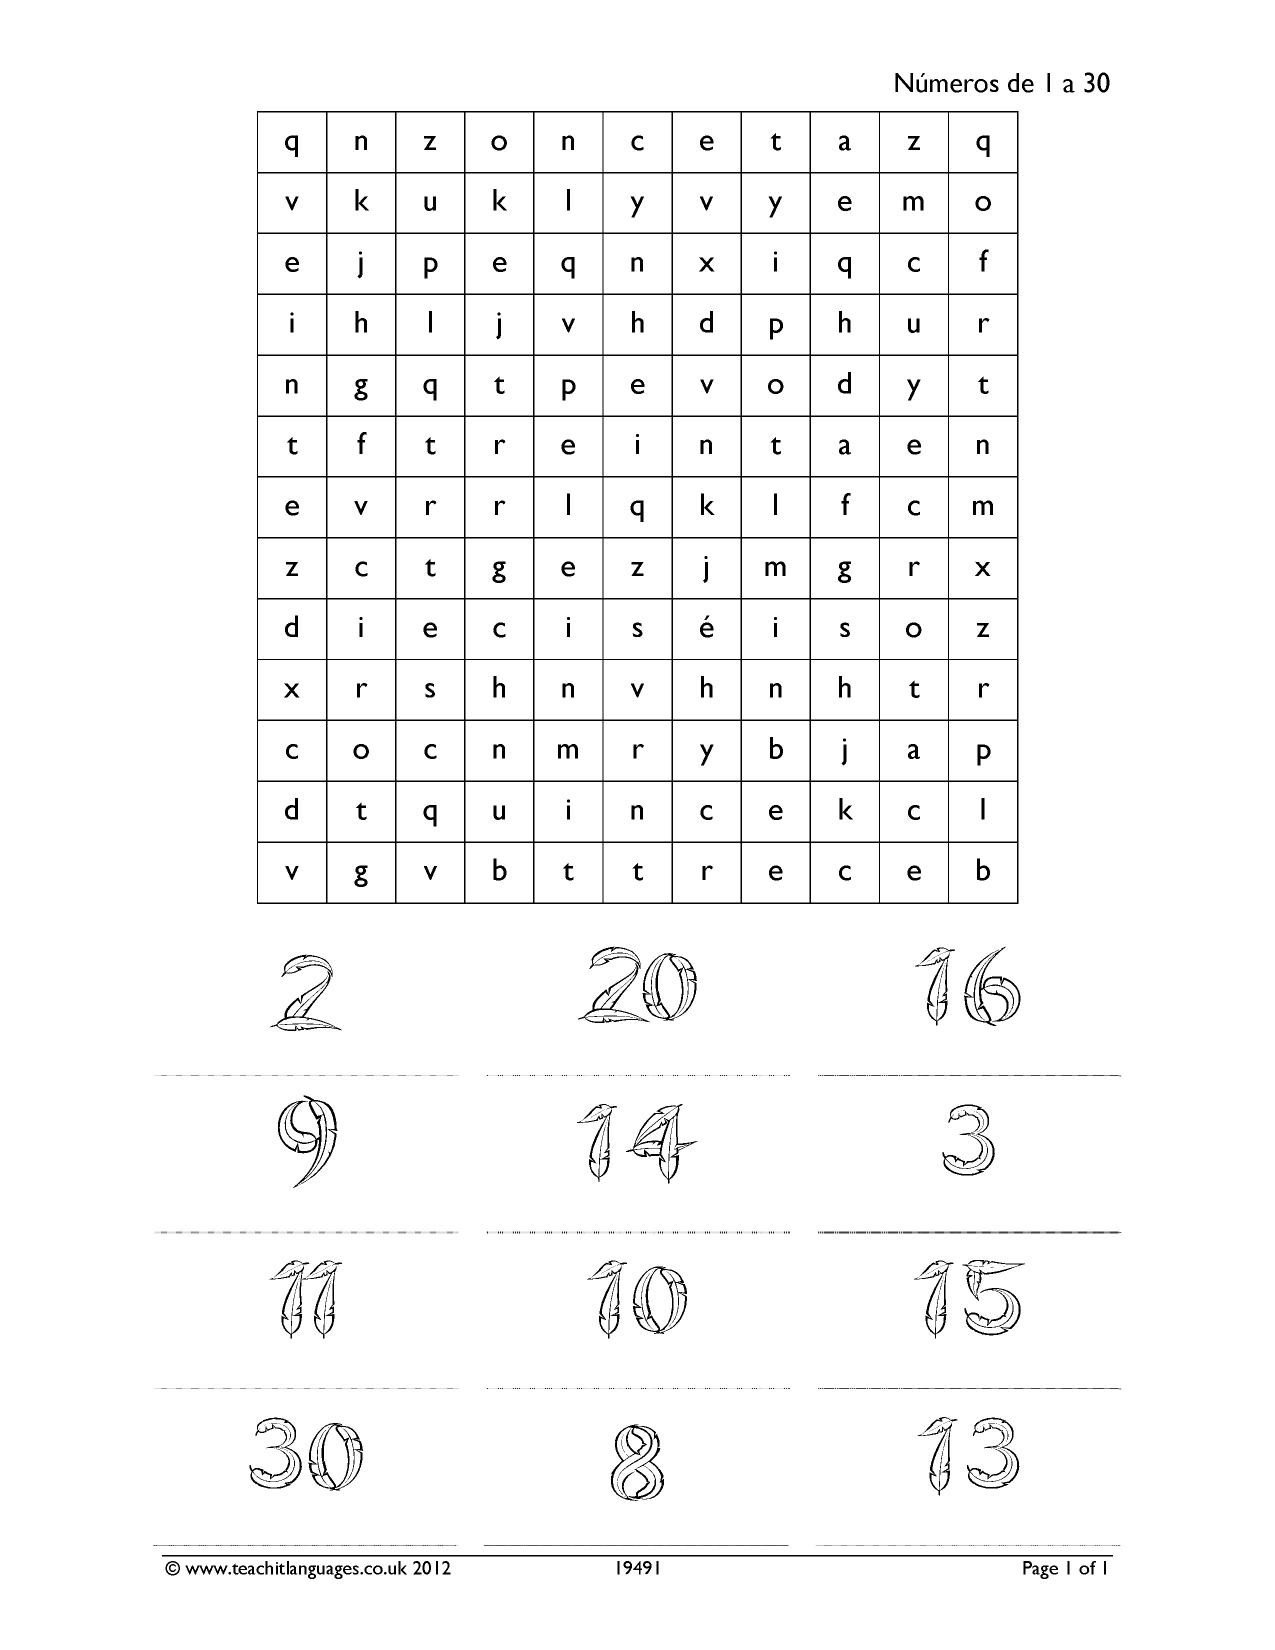 Spanish Numbers 1 30 Worksheet Ks3 Spanish Numbers Dates Ages